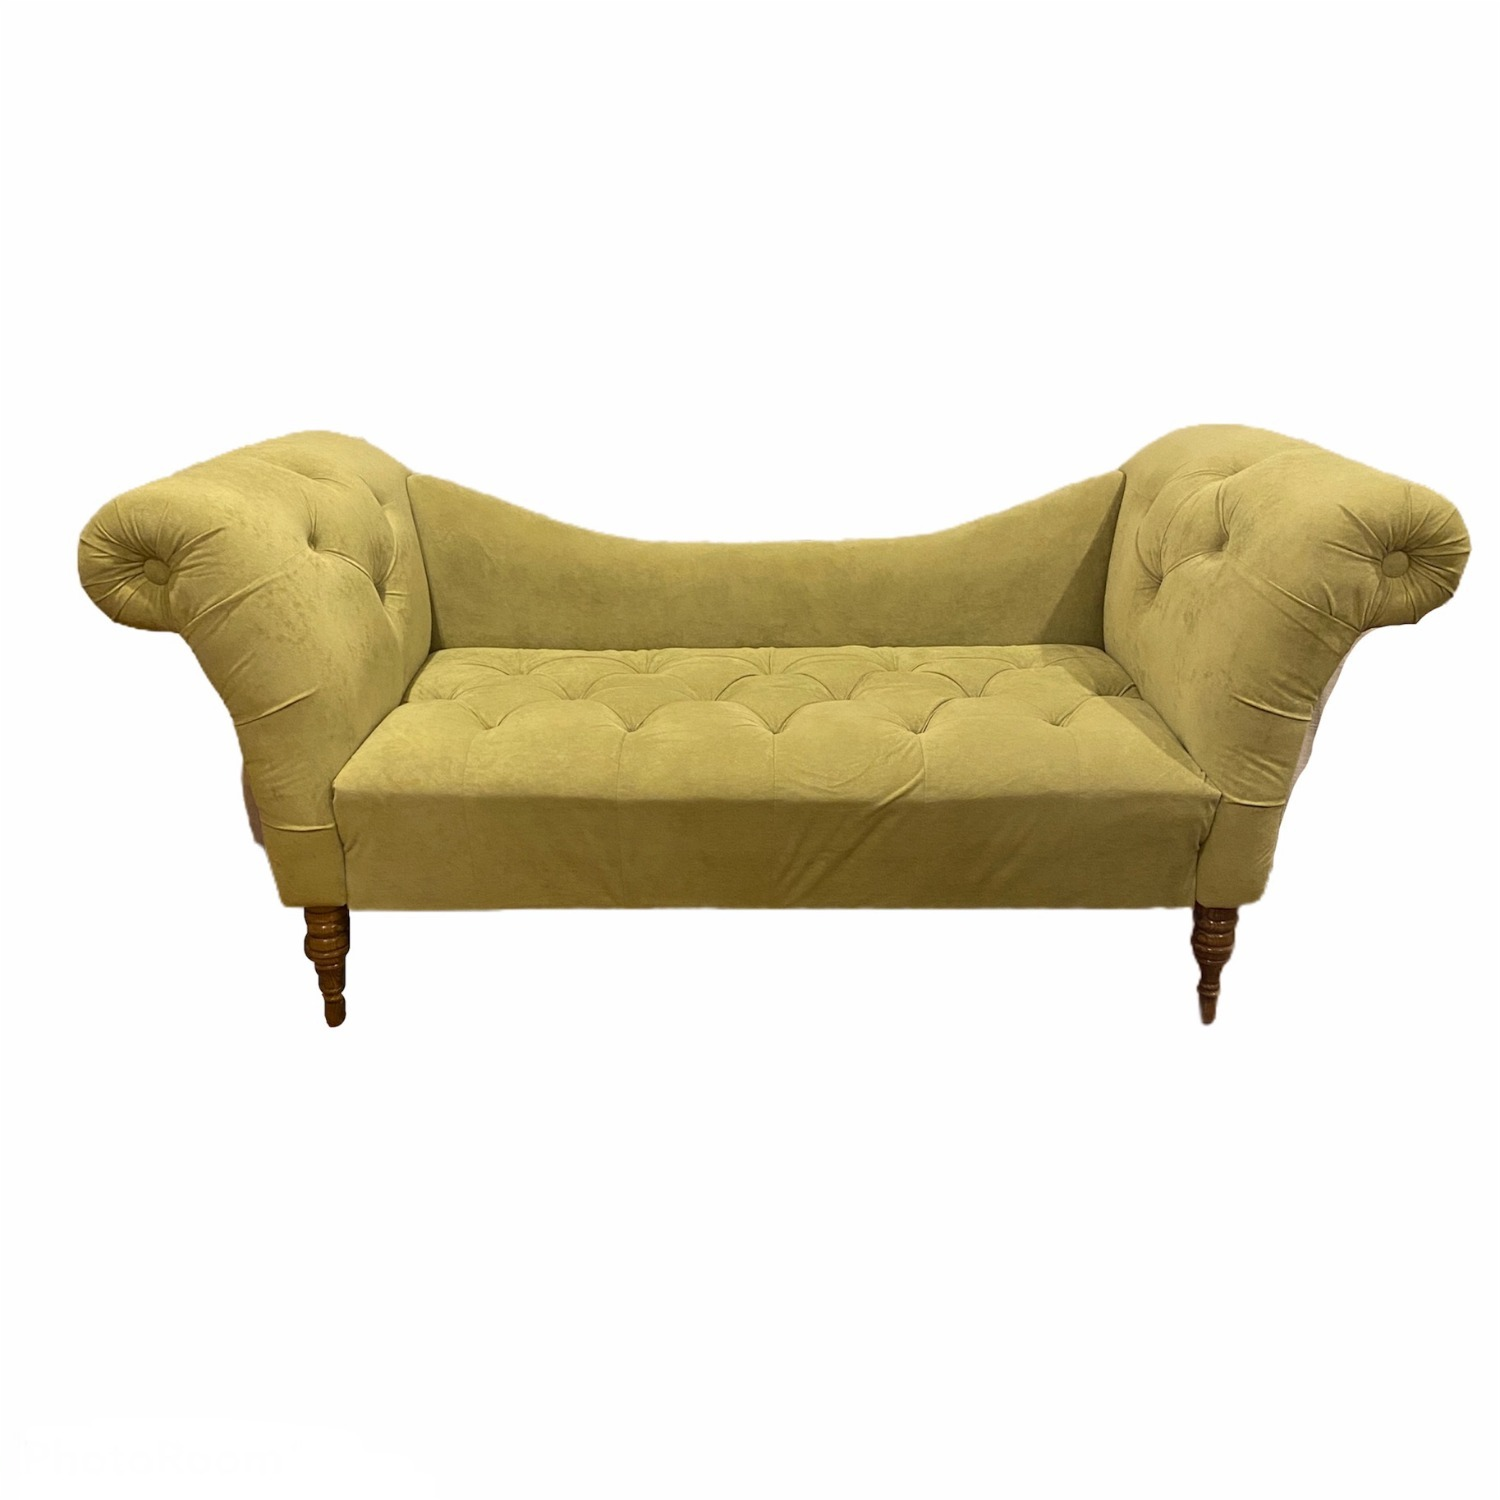 Urban Outfitters Velvet Fainting Couch Green Sofa - image-1